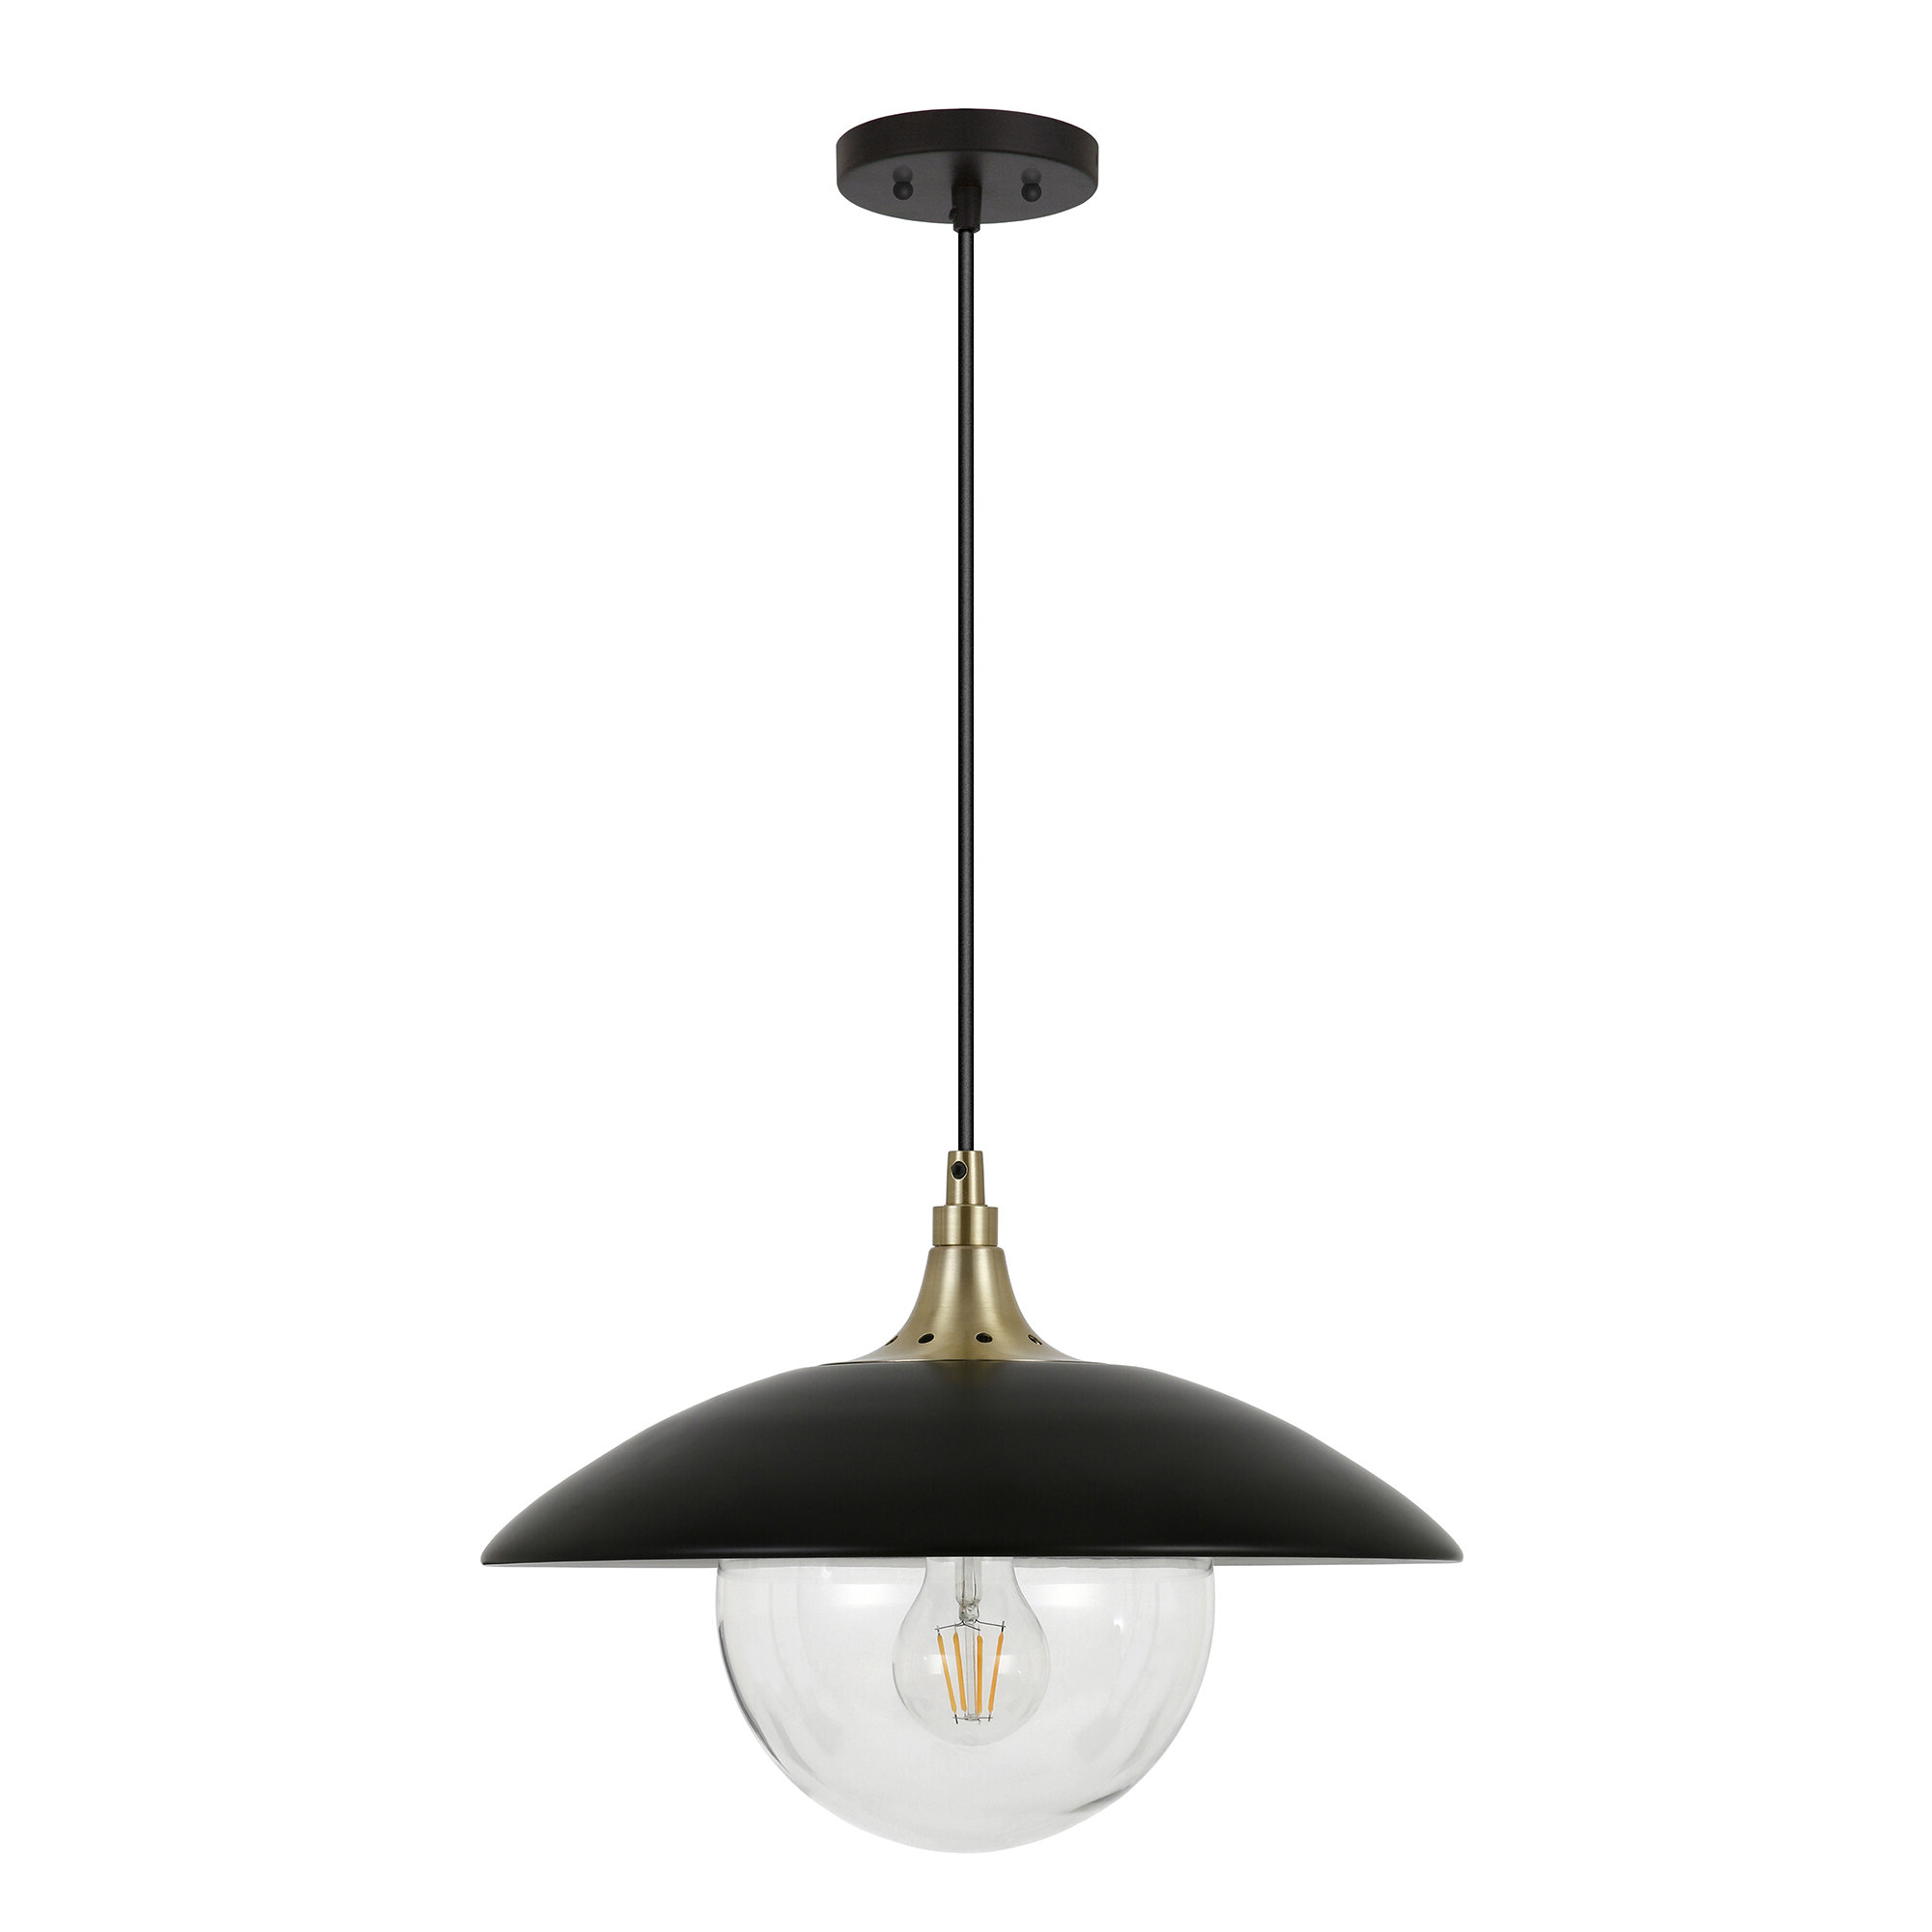 Famous Deveraux 1 Light Single Dome Pendant With Regard To Devereaux 1 Light Single Globe Pendants (View 7 of 20)